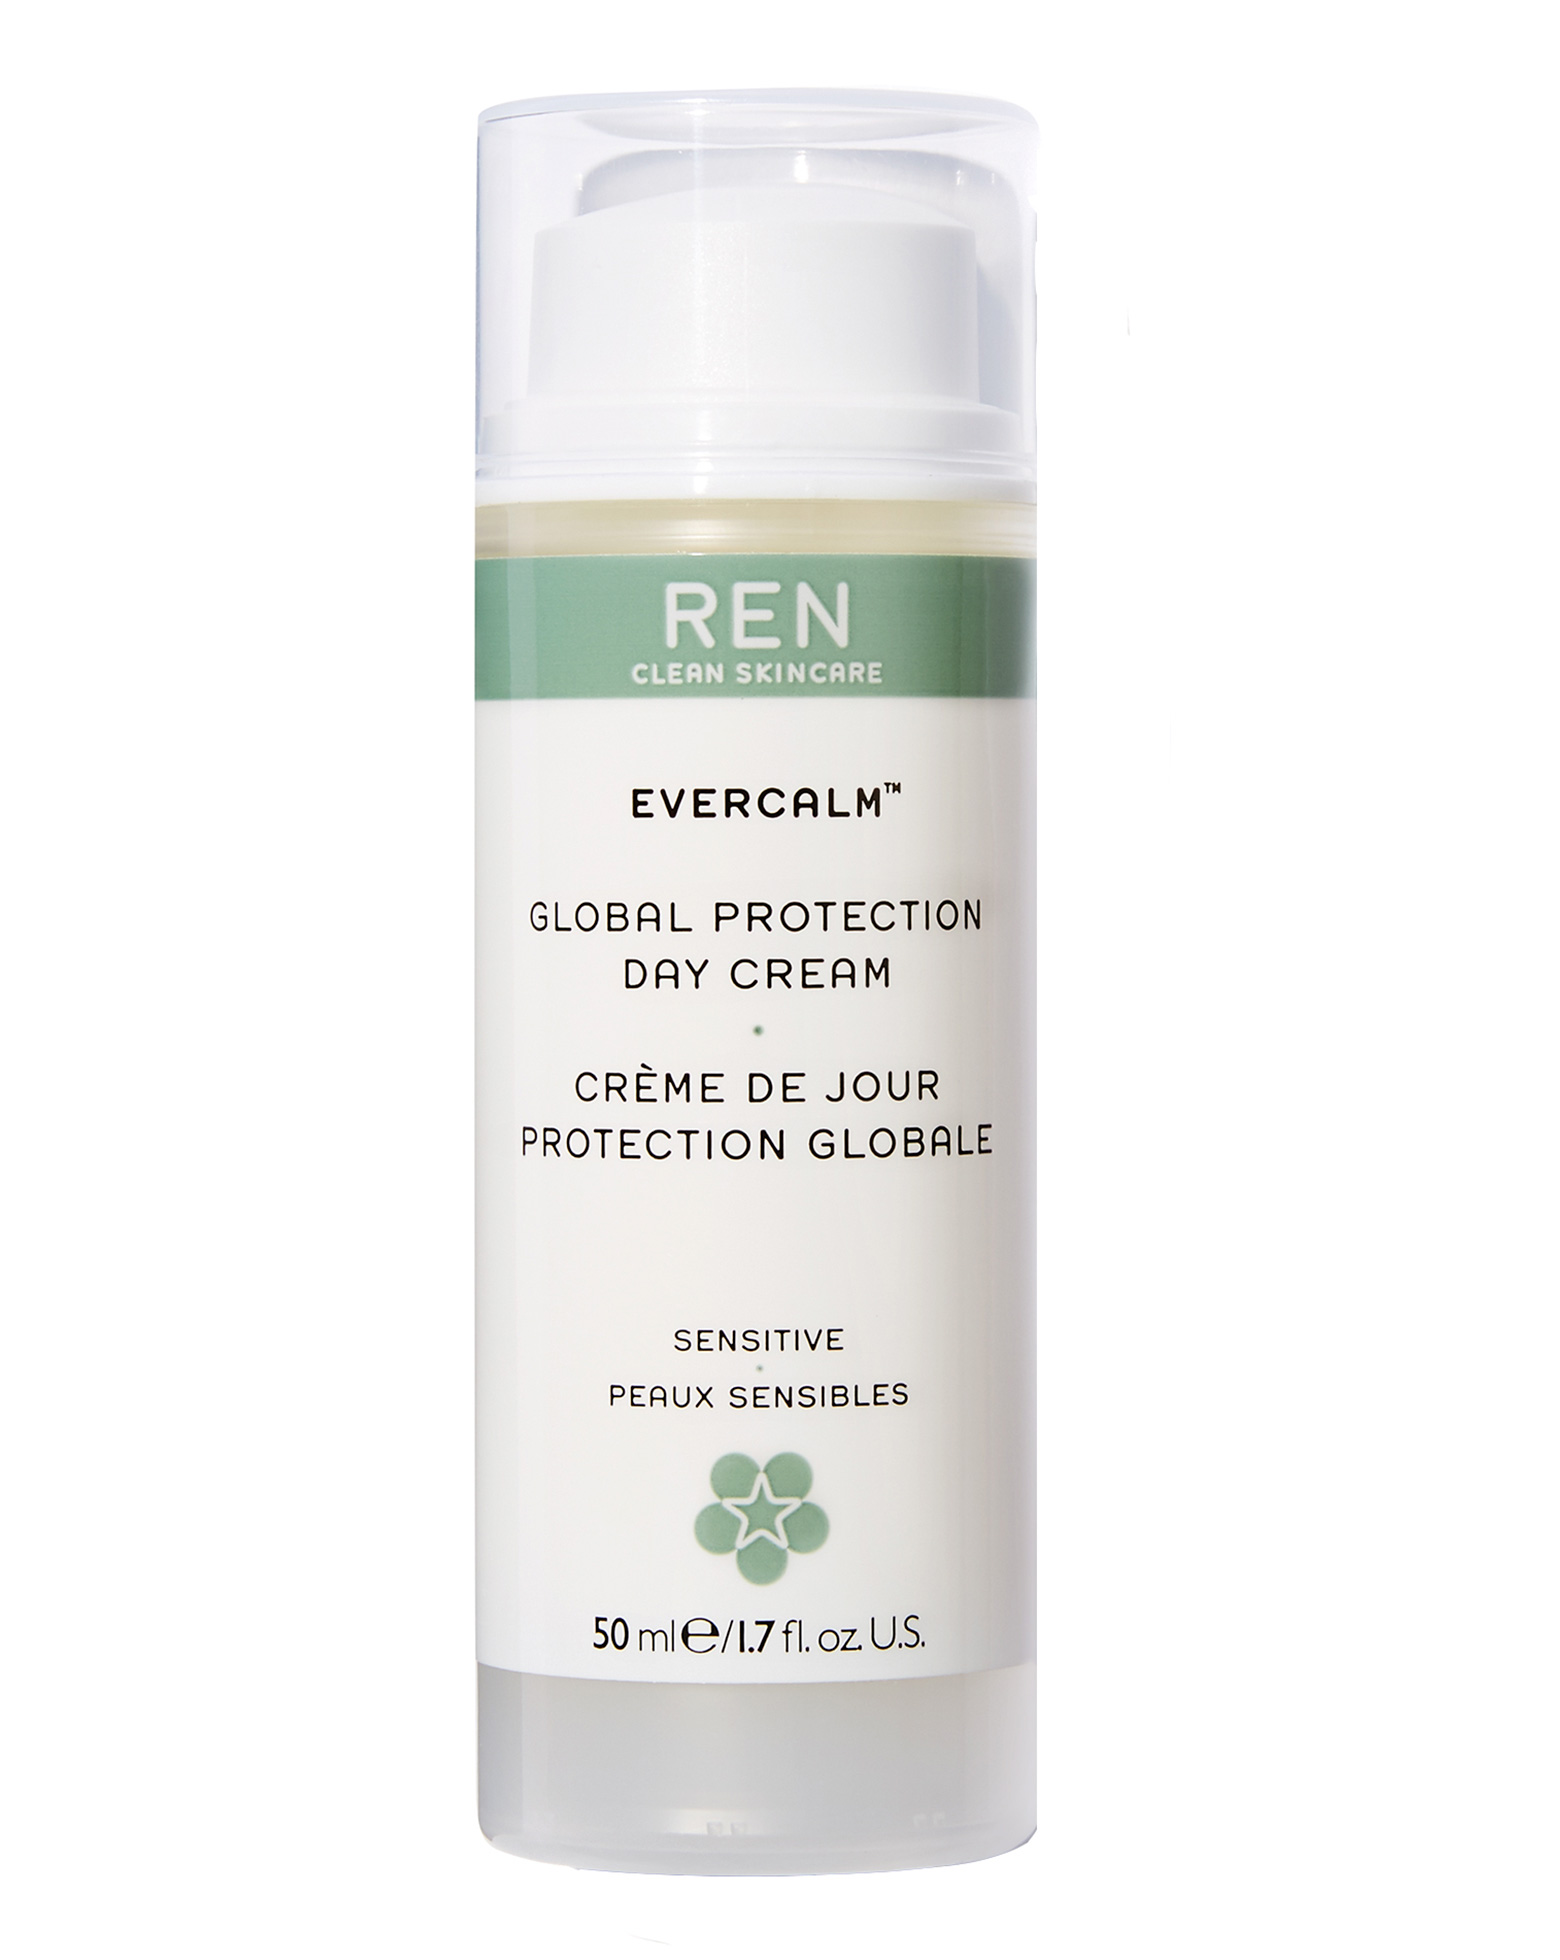 Evercalm Global Protection Day Cream by REN CLEAN SKINCARE | Cult Beauty